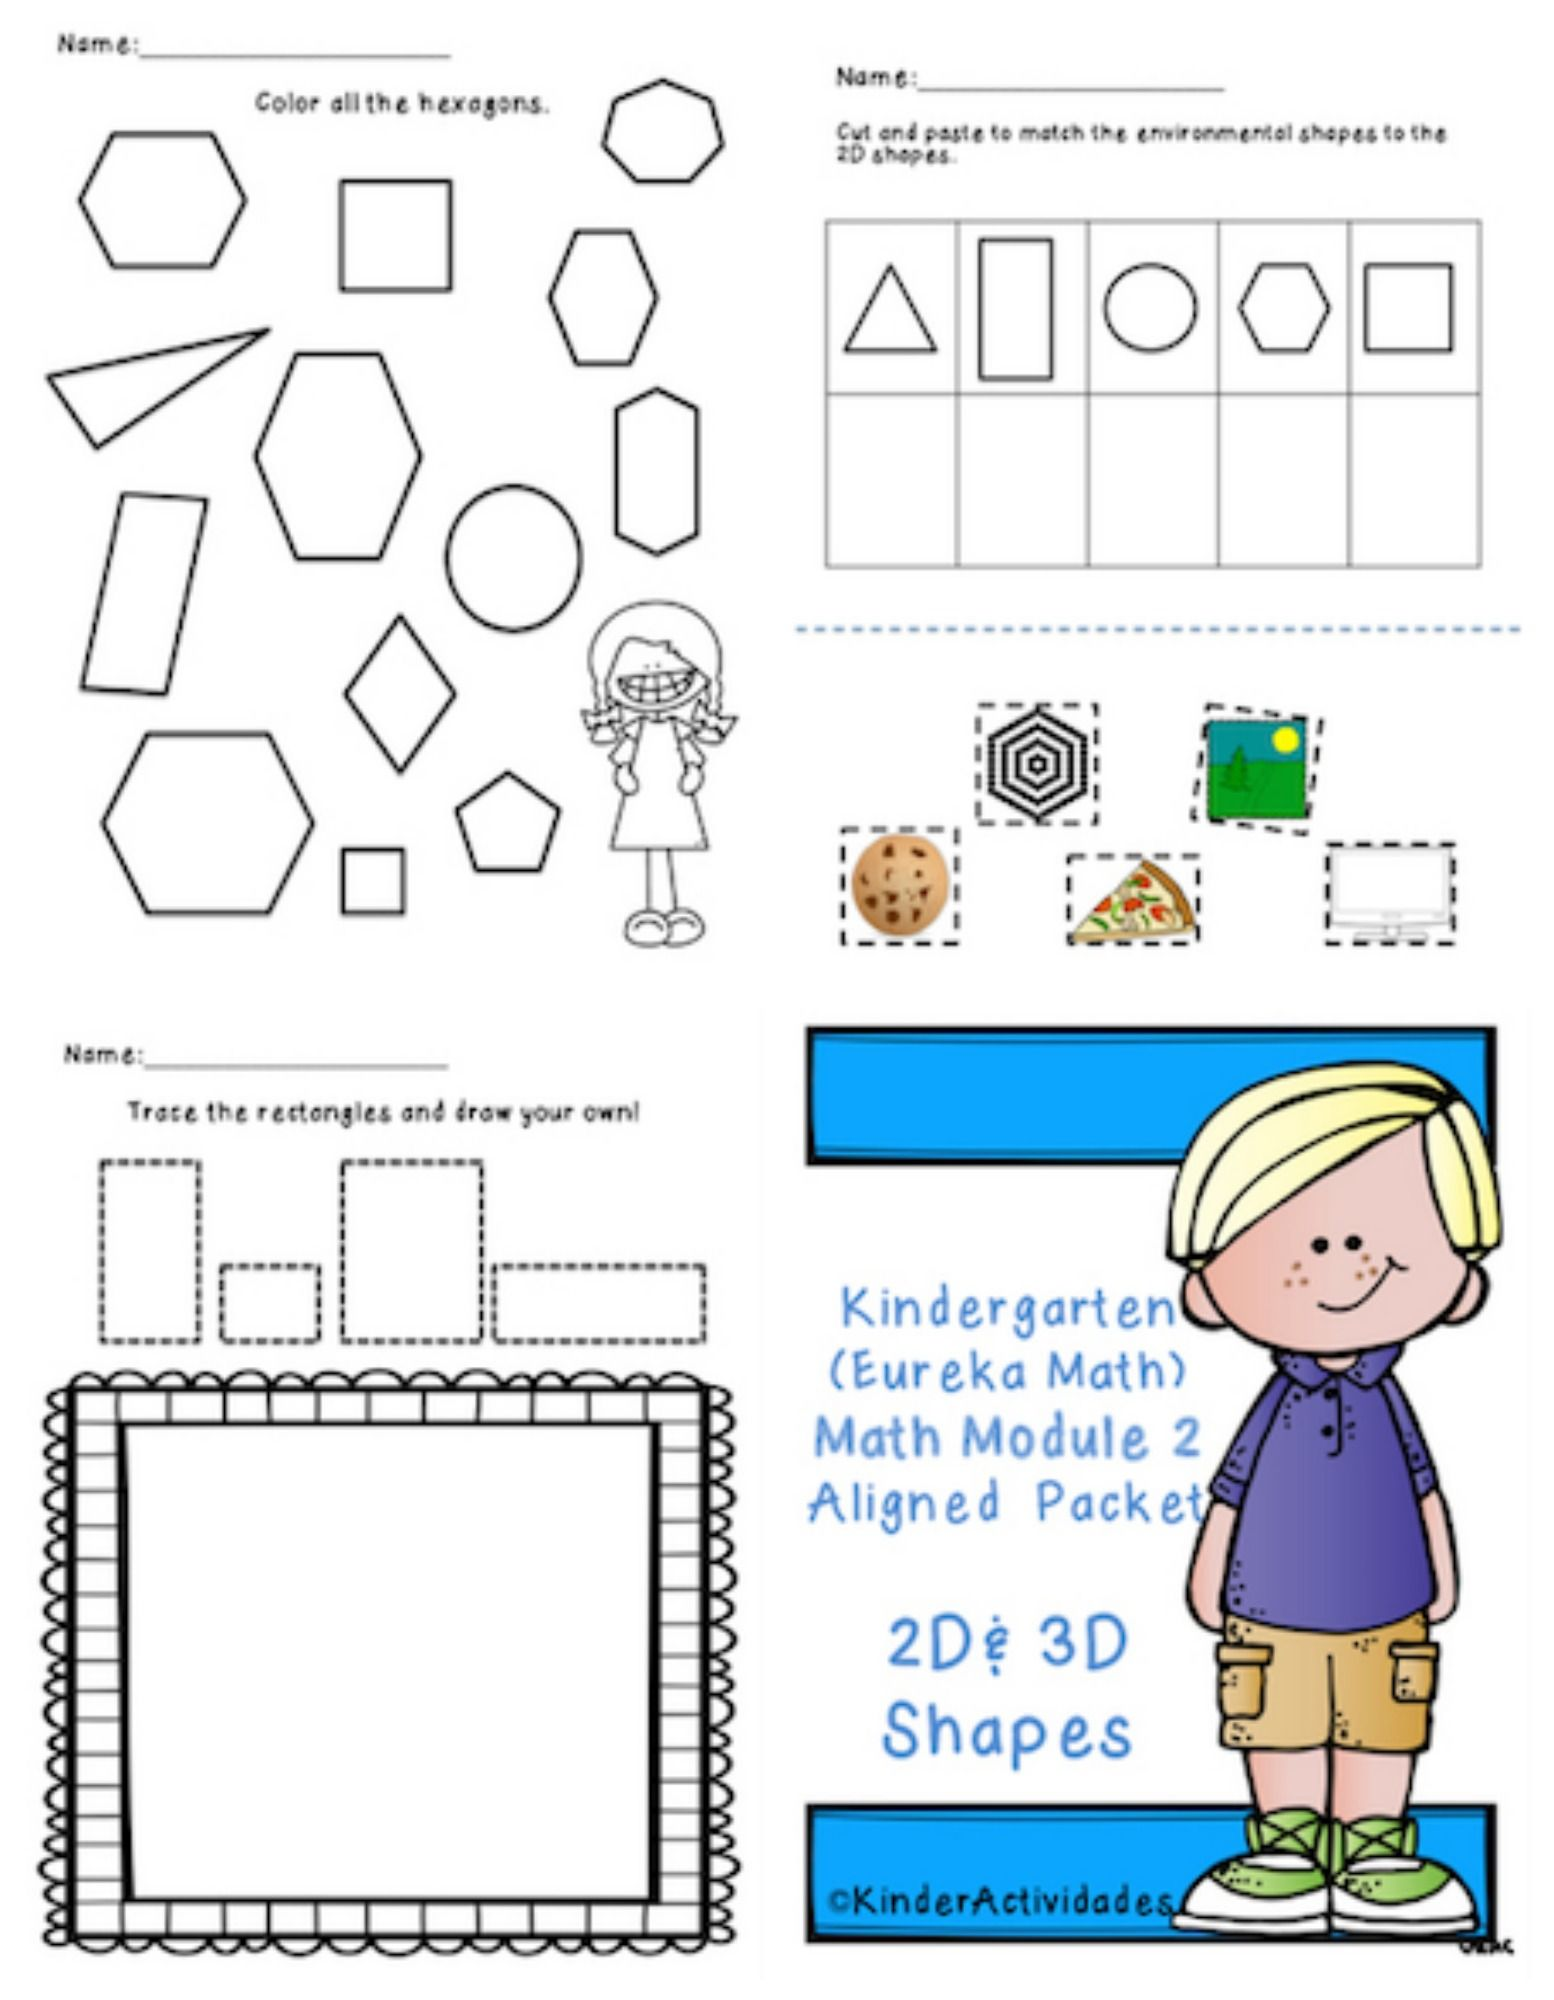 Kindergarten 2d Amp 3d Shapes